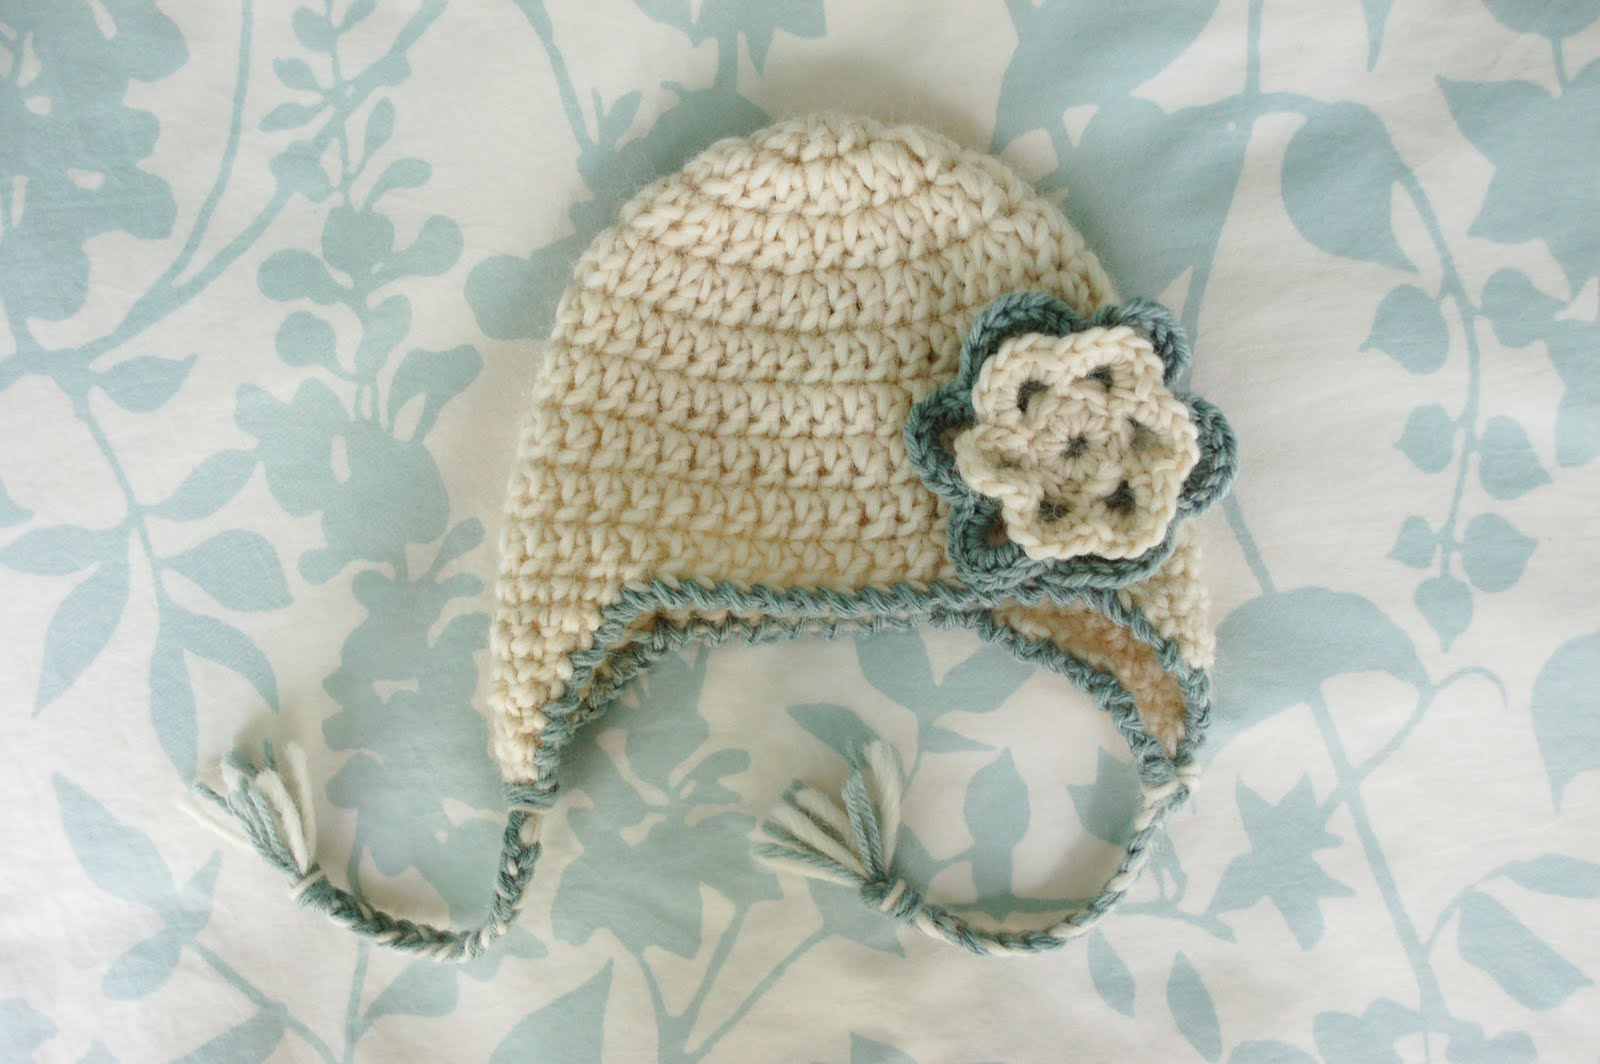 Alli crafts free pattern baby earflap hat newborn free pattern baby earflap hat newborn bankloansurffo Image collections